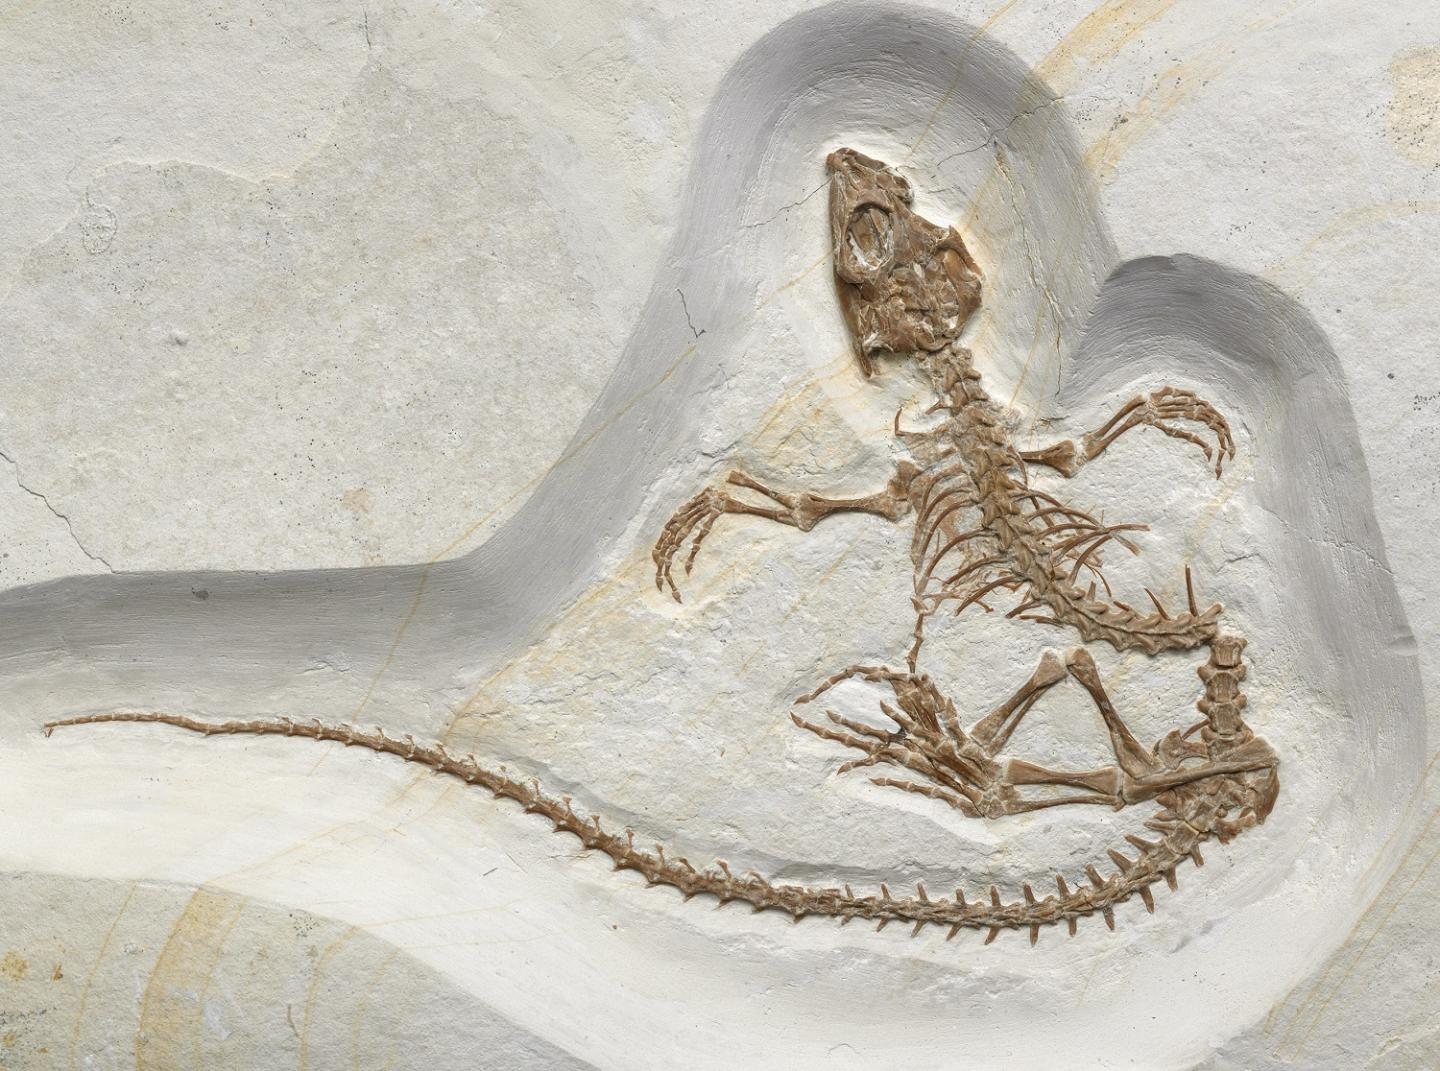 Vadasaurus Fossil Shows a Reptile in Transition